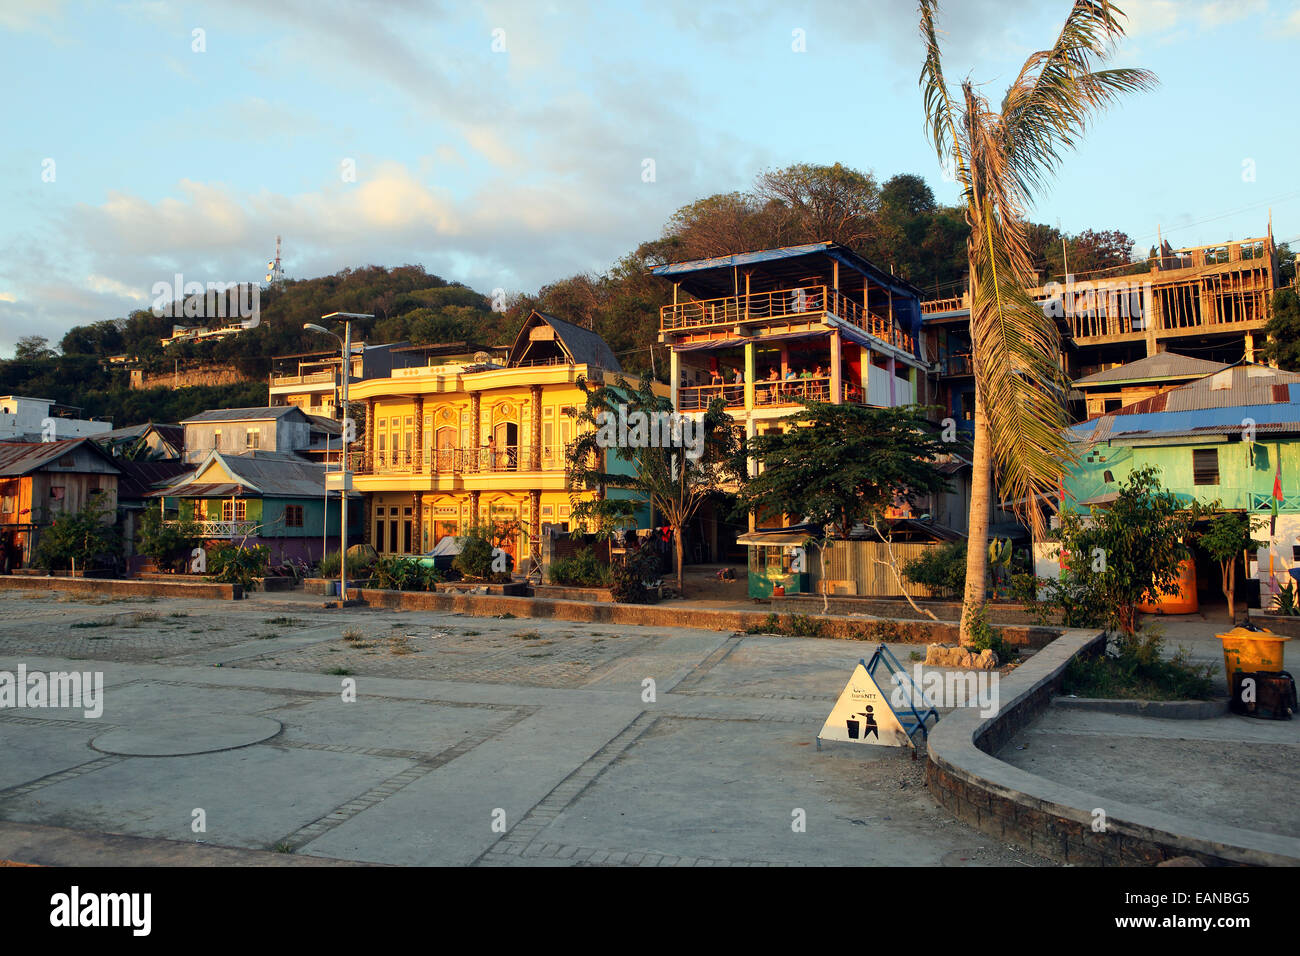 Tourism buildings along the waterfront in Labuan Bajo, Flores. - Stock Image